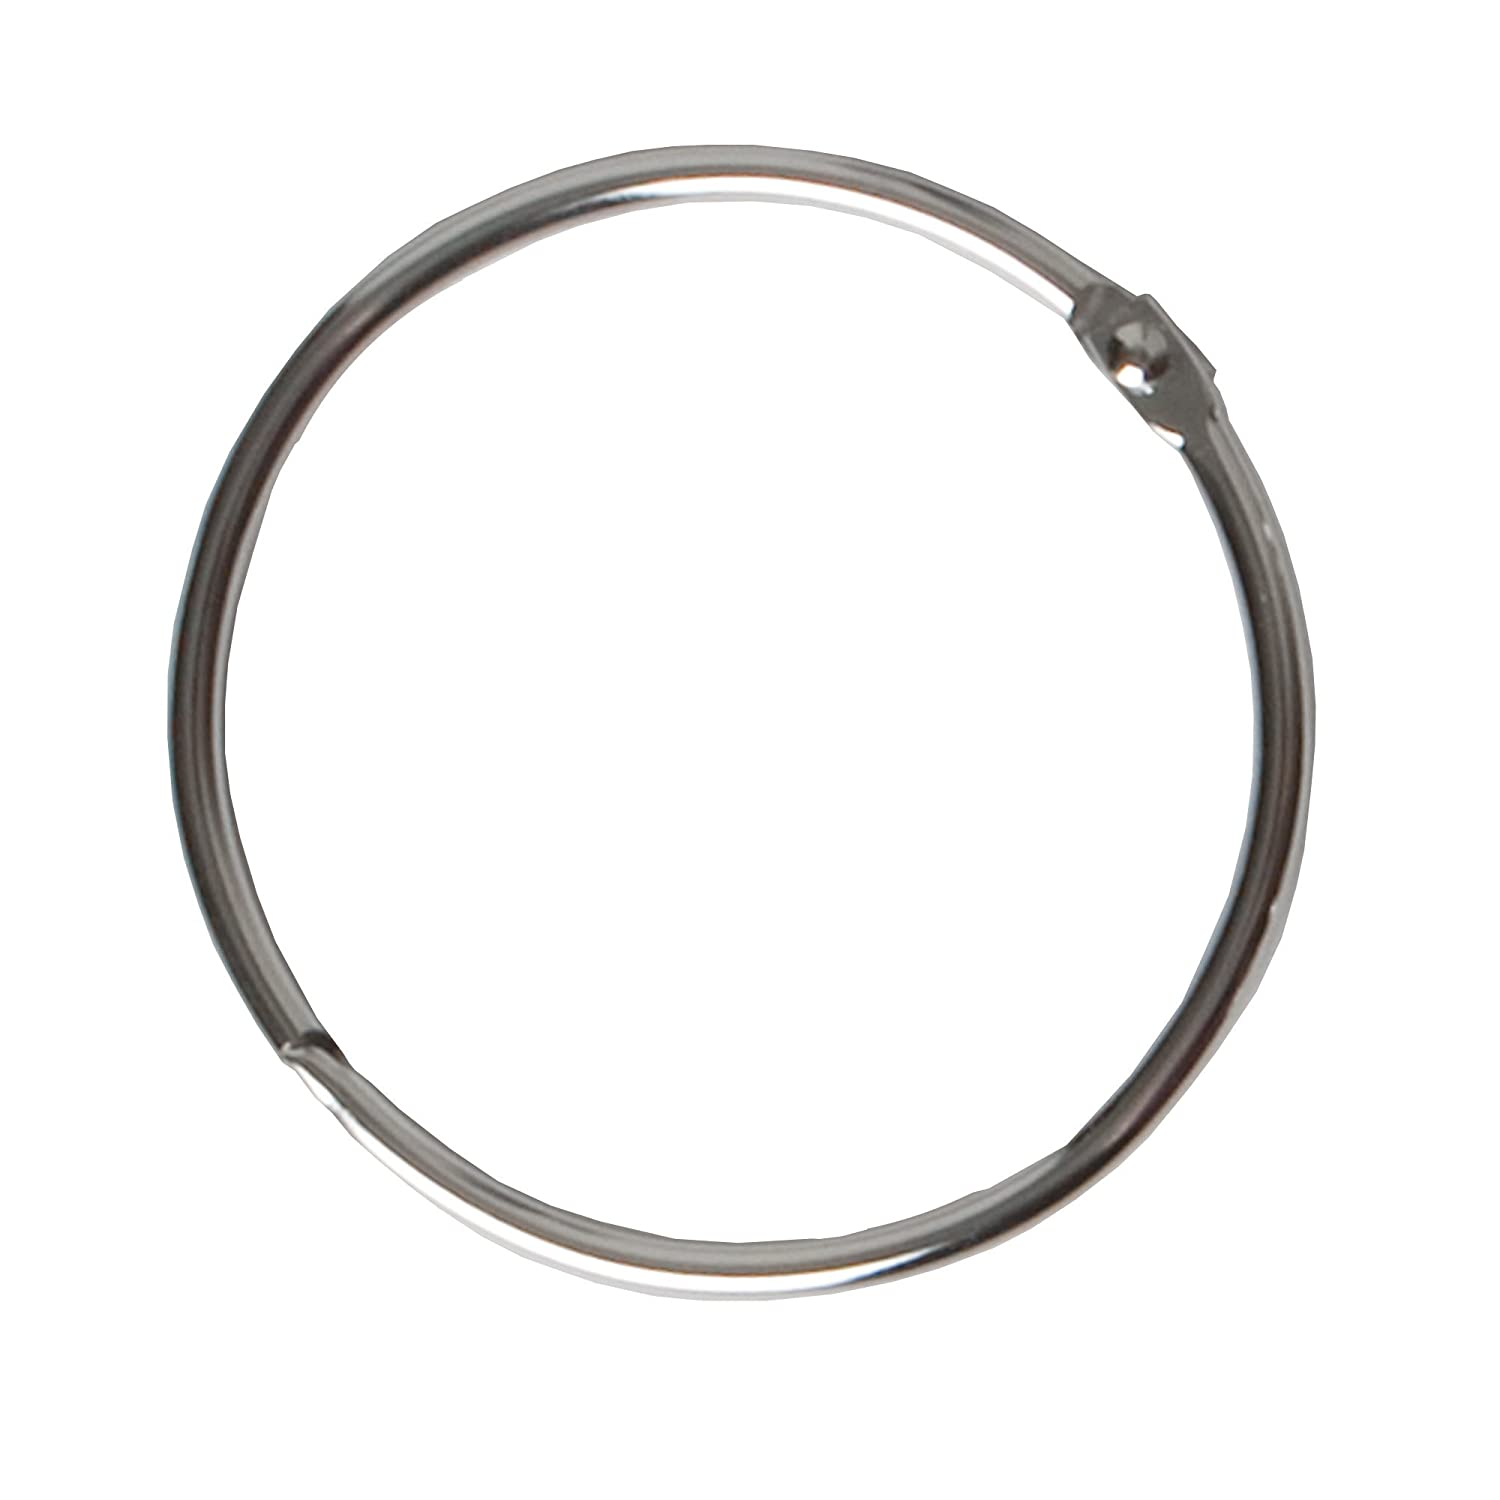 Amazon.com: Maytex Metal Circular Shower Ring, Chrome, Set of 12 ...